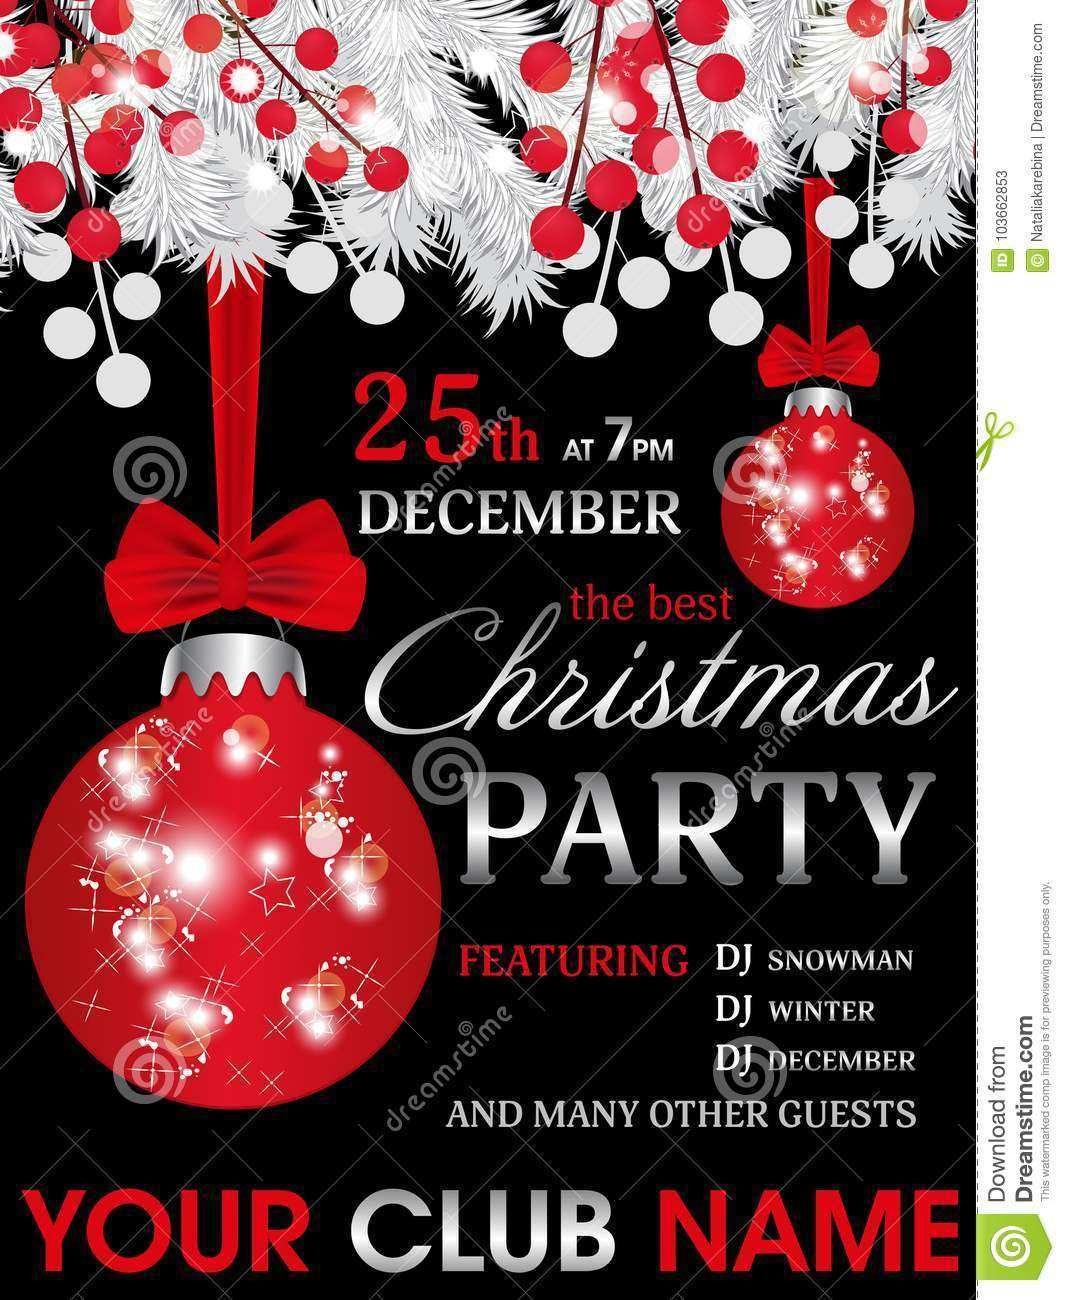 67 Customize Christmas Party Invitation Template Black And White for Ms Word for Christmas Party Invitation Template Black And White